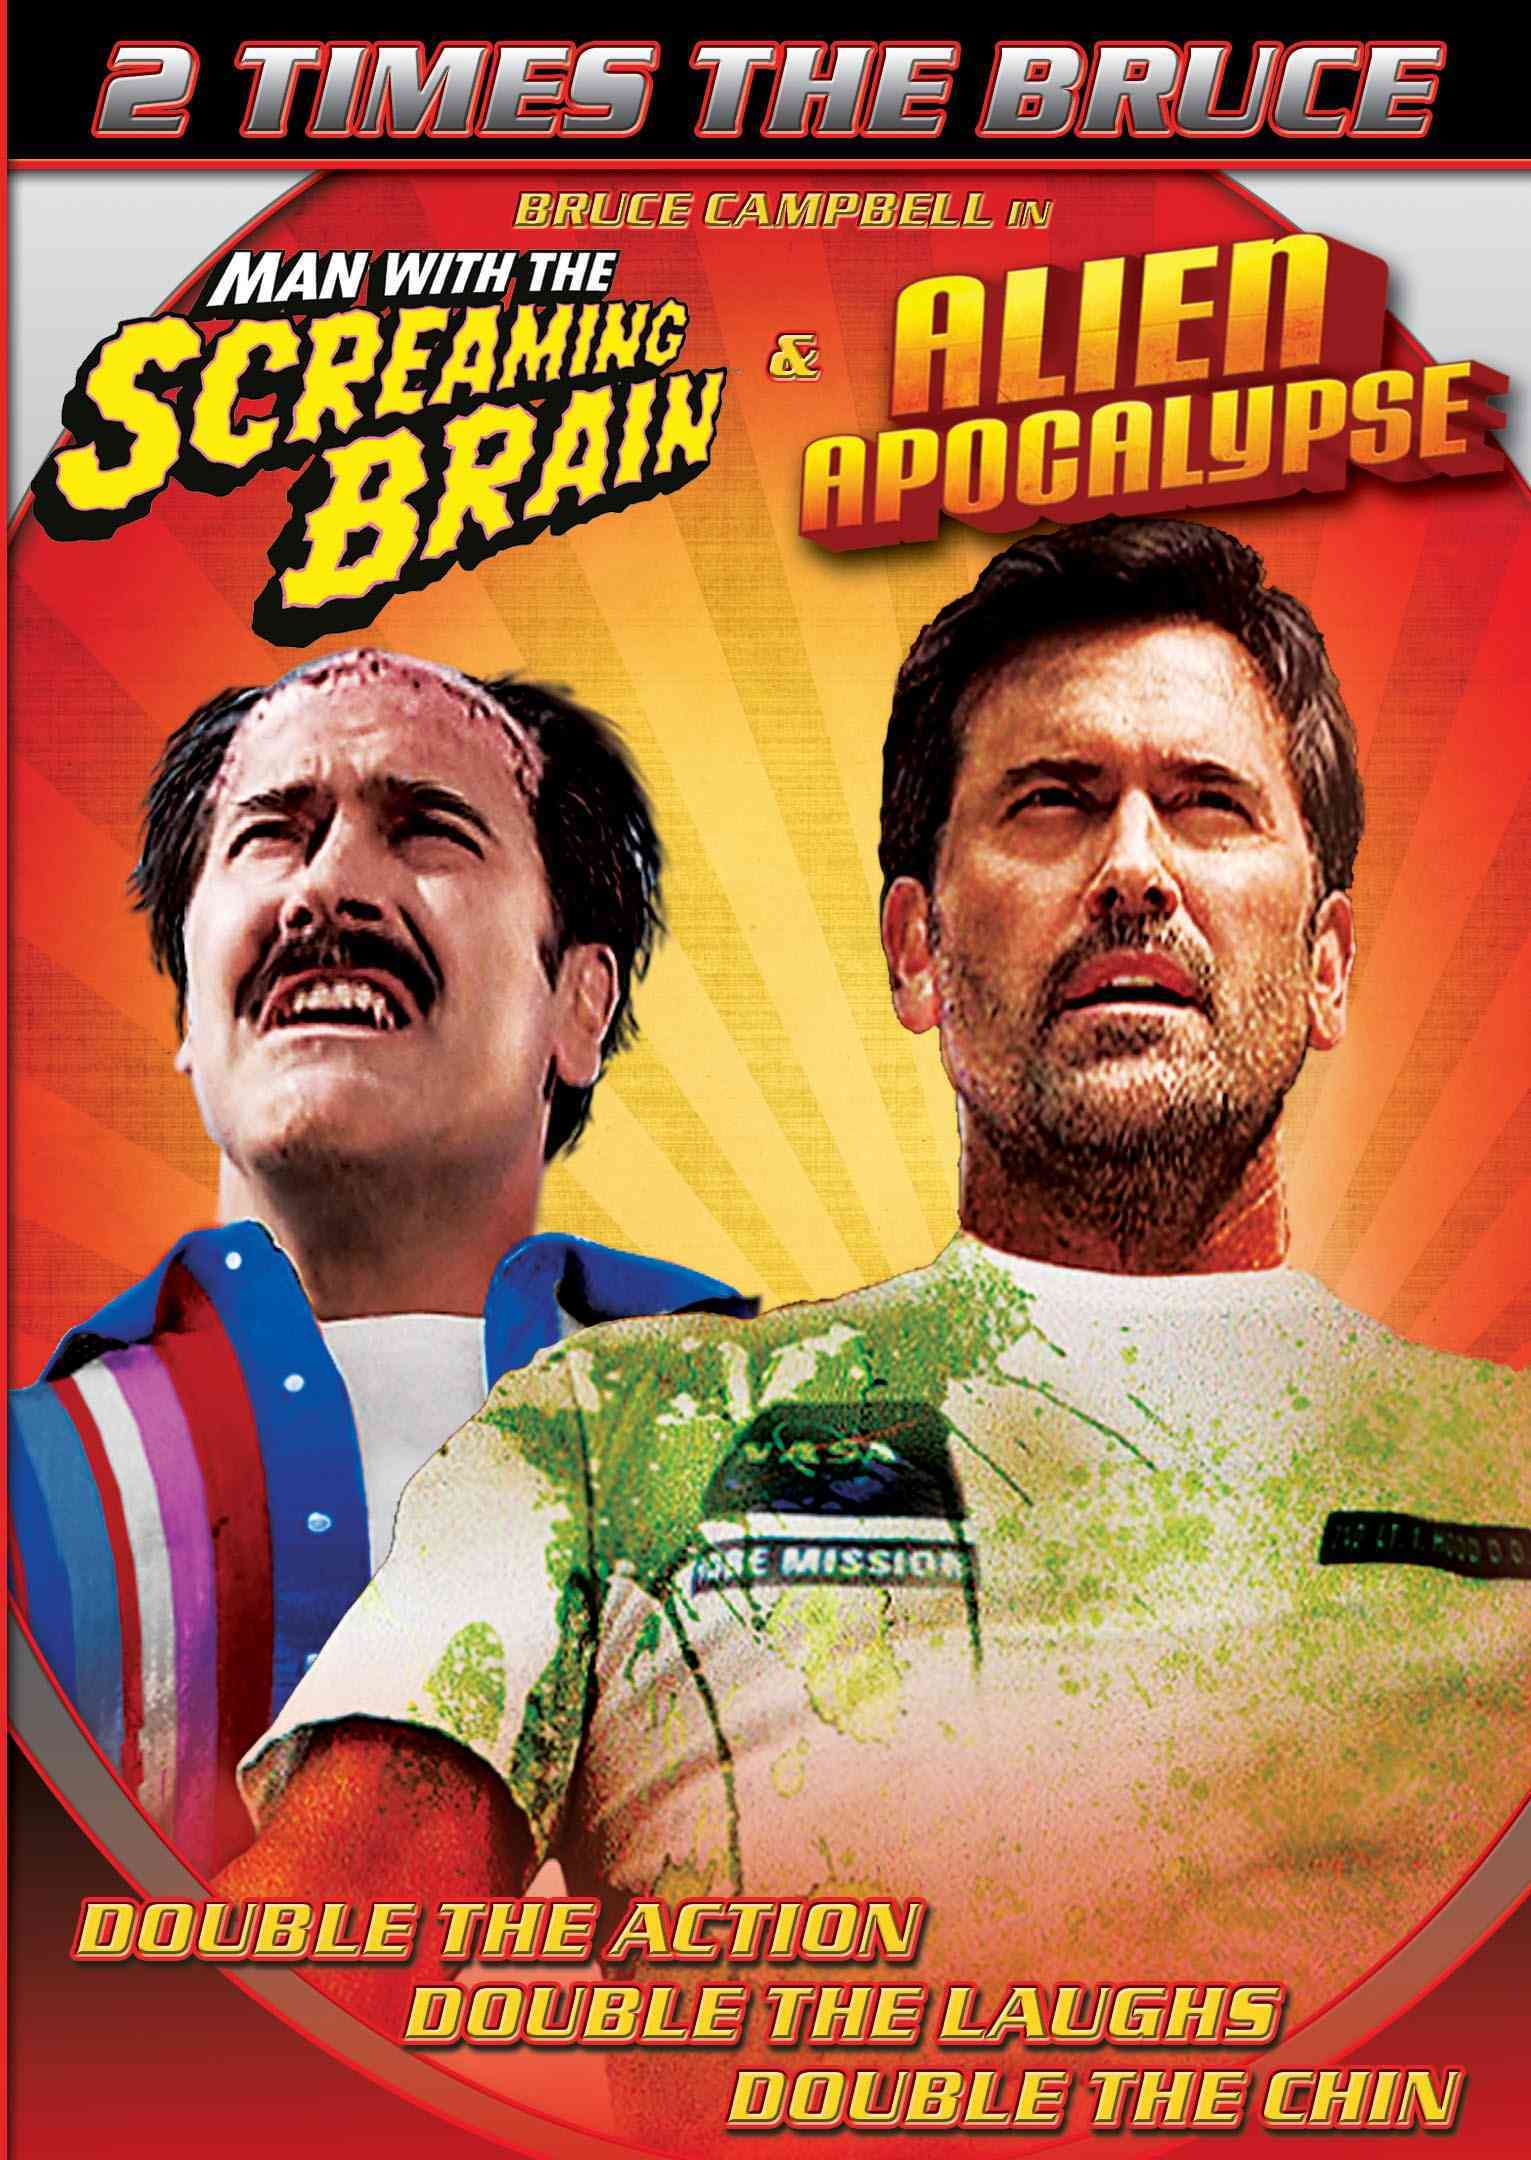 BRUCE CAMPBELL E PACK BY CAMPBELL,BRUCE (DVD)